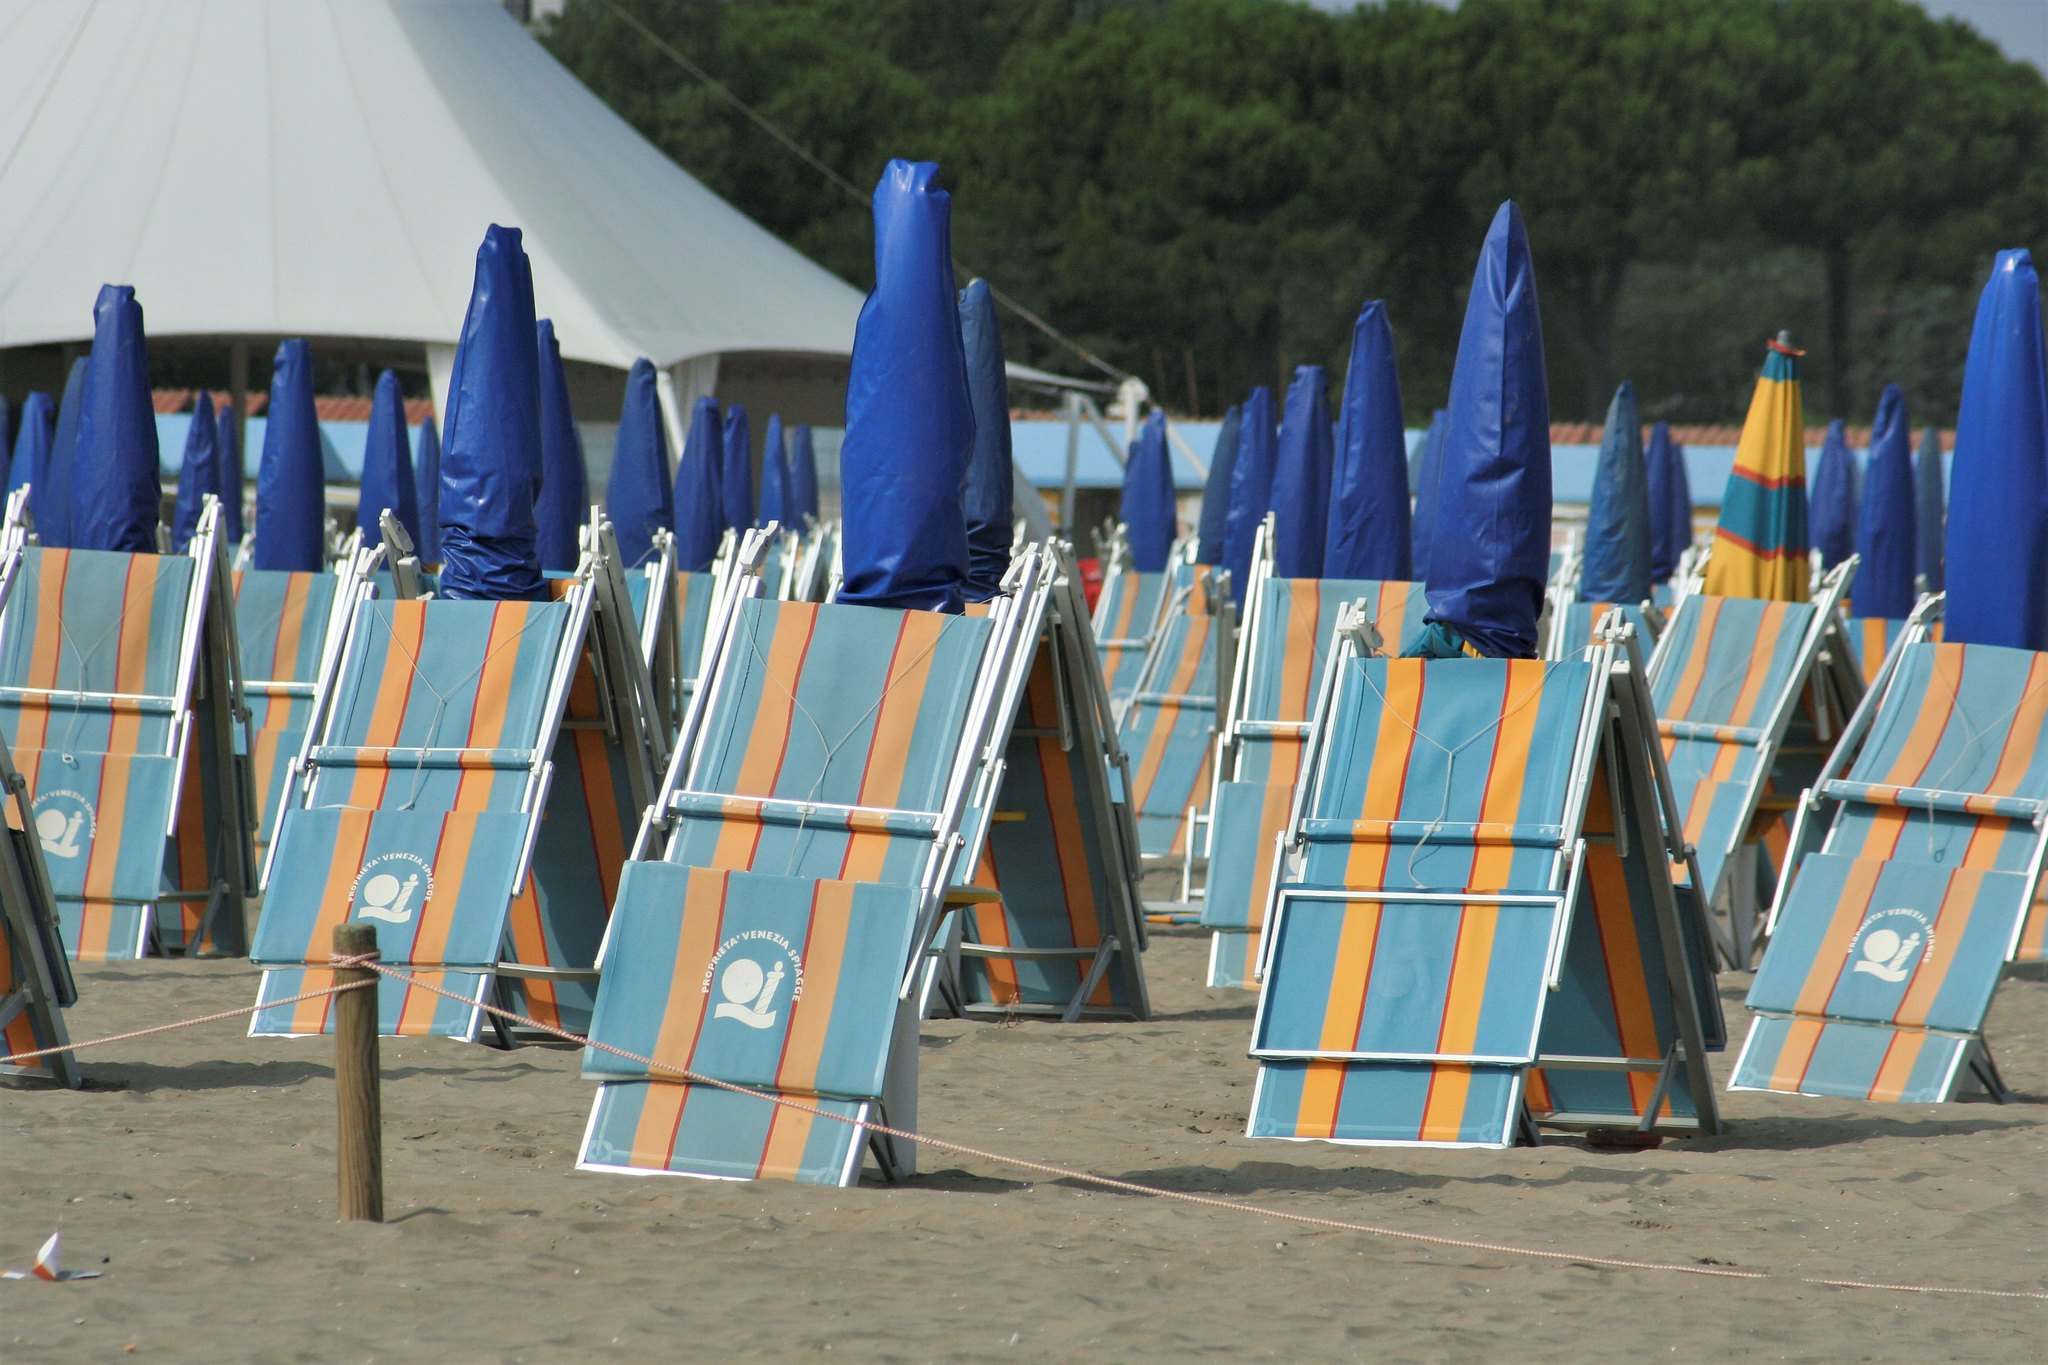 Umbrellas and deck chairs (2)